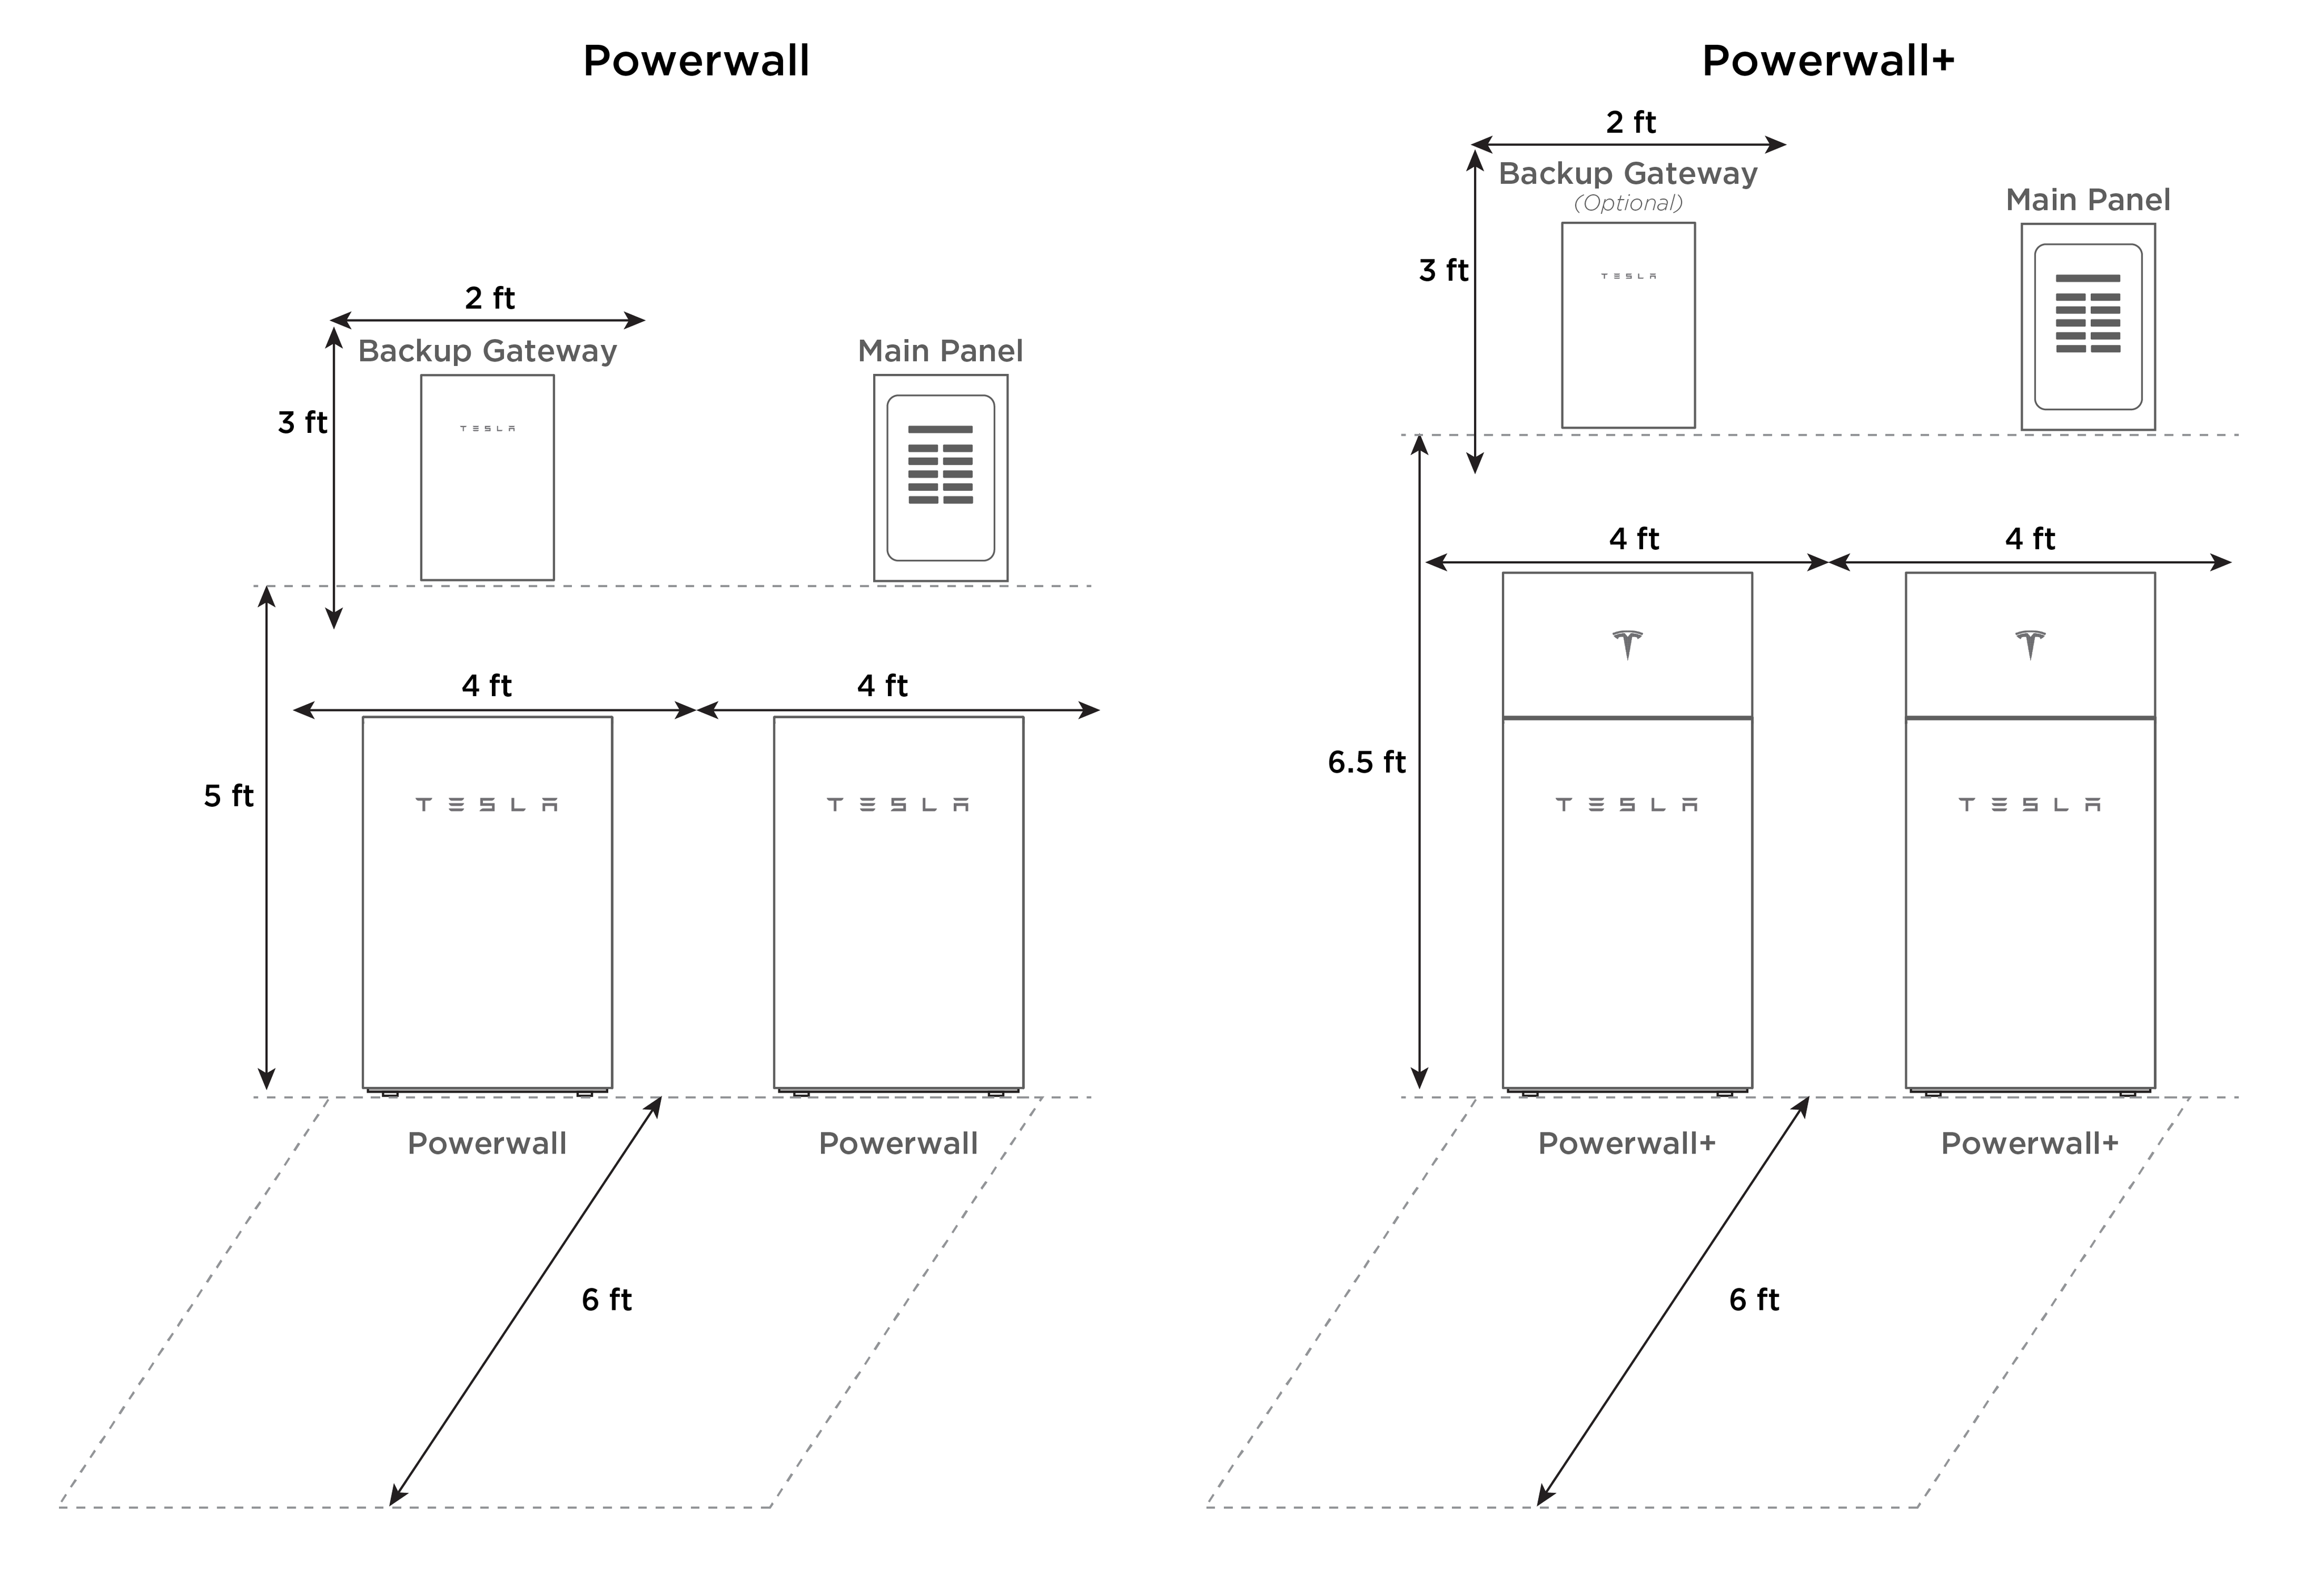 Powerwall pre-installation clearance diagrams